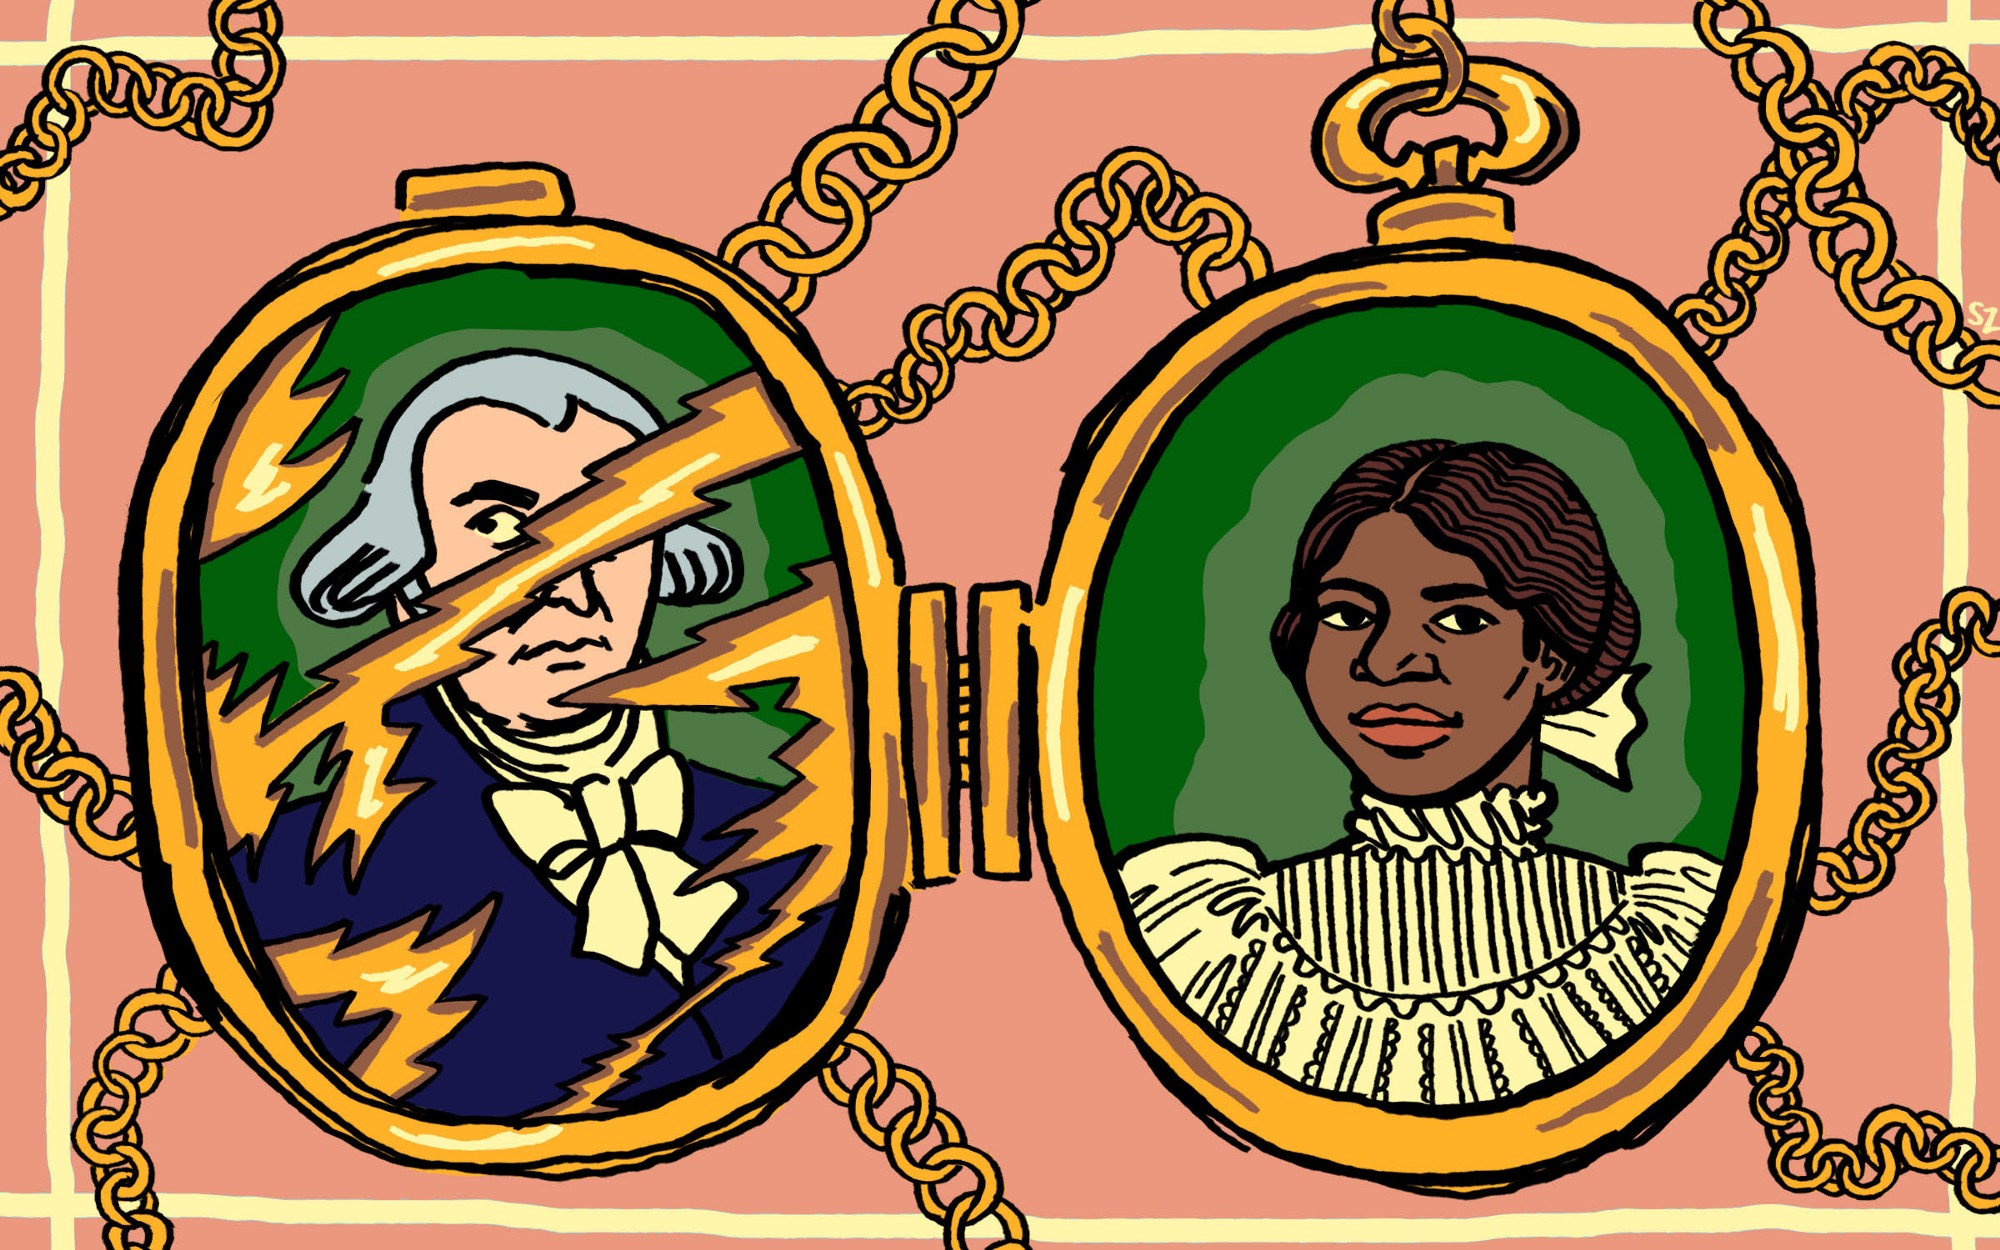 An illustration of an open locket that has James Madison's portrait scratched out on one side, and Coreen, one the other.